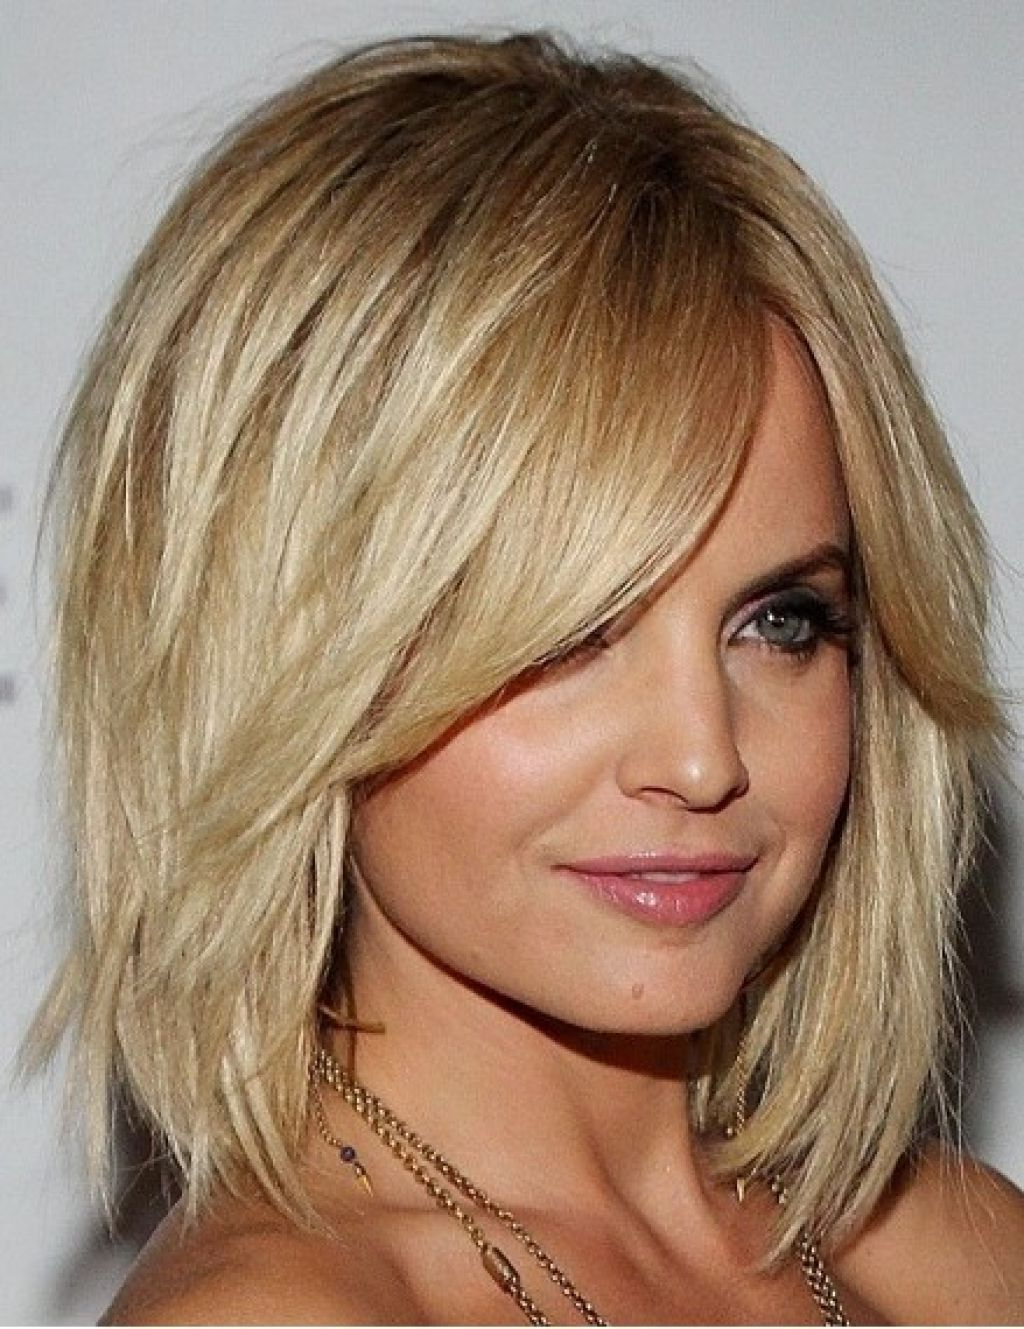 Long Choppy Hairstyle Pictures – Wow – Image Results Regarding Shoulder Length Choppy Hairstyles (View 18 of 20)